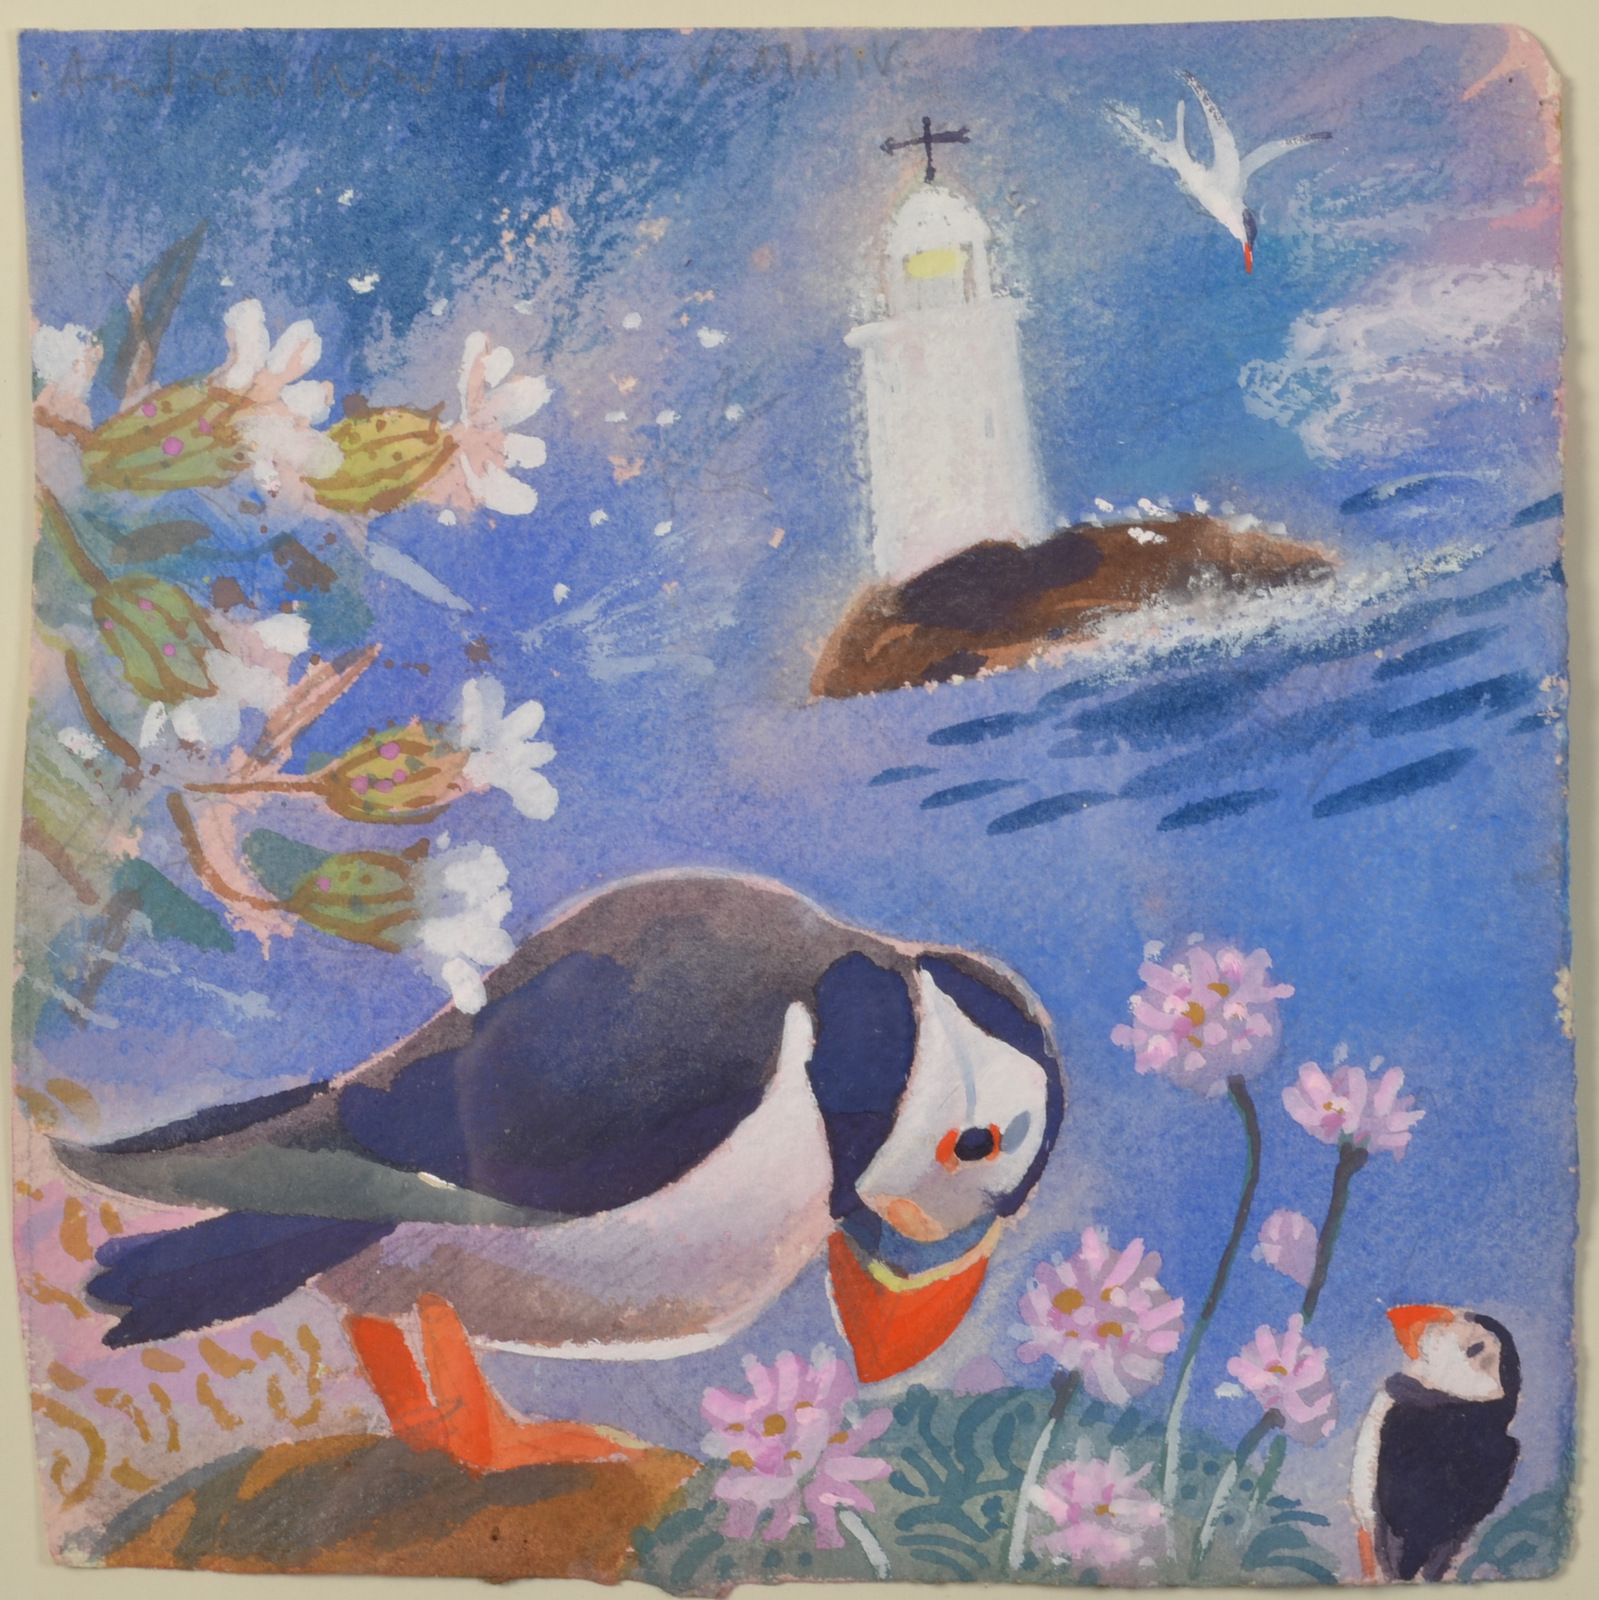 Lot 11 - ANDREW WADDINGTON Puffin Watercolour Signed Dated 2004 21 x 21cm